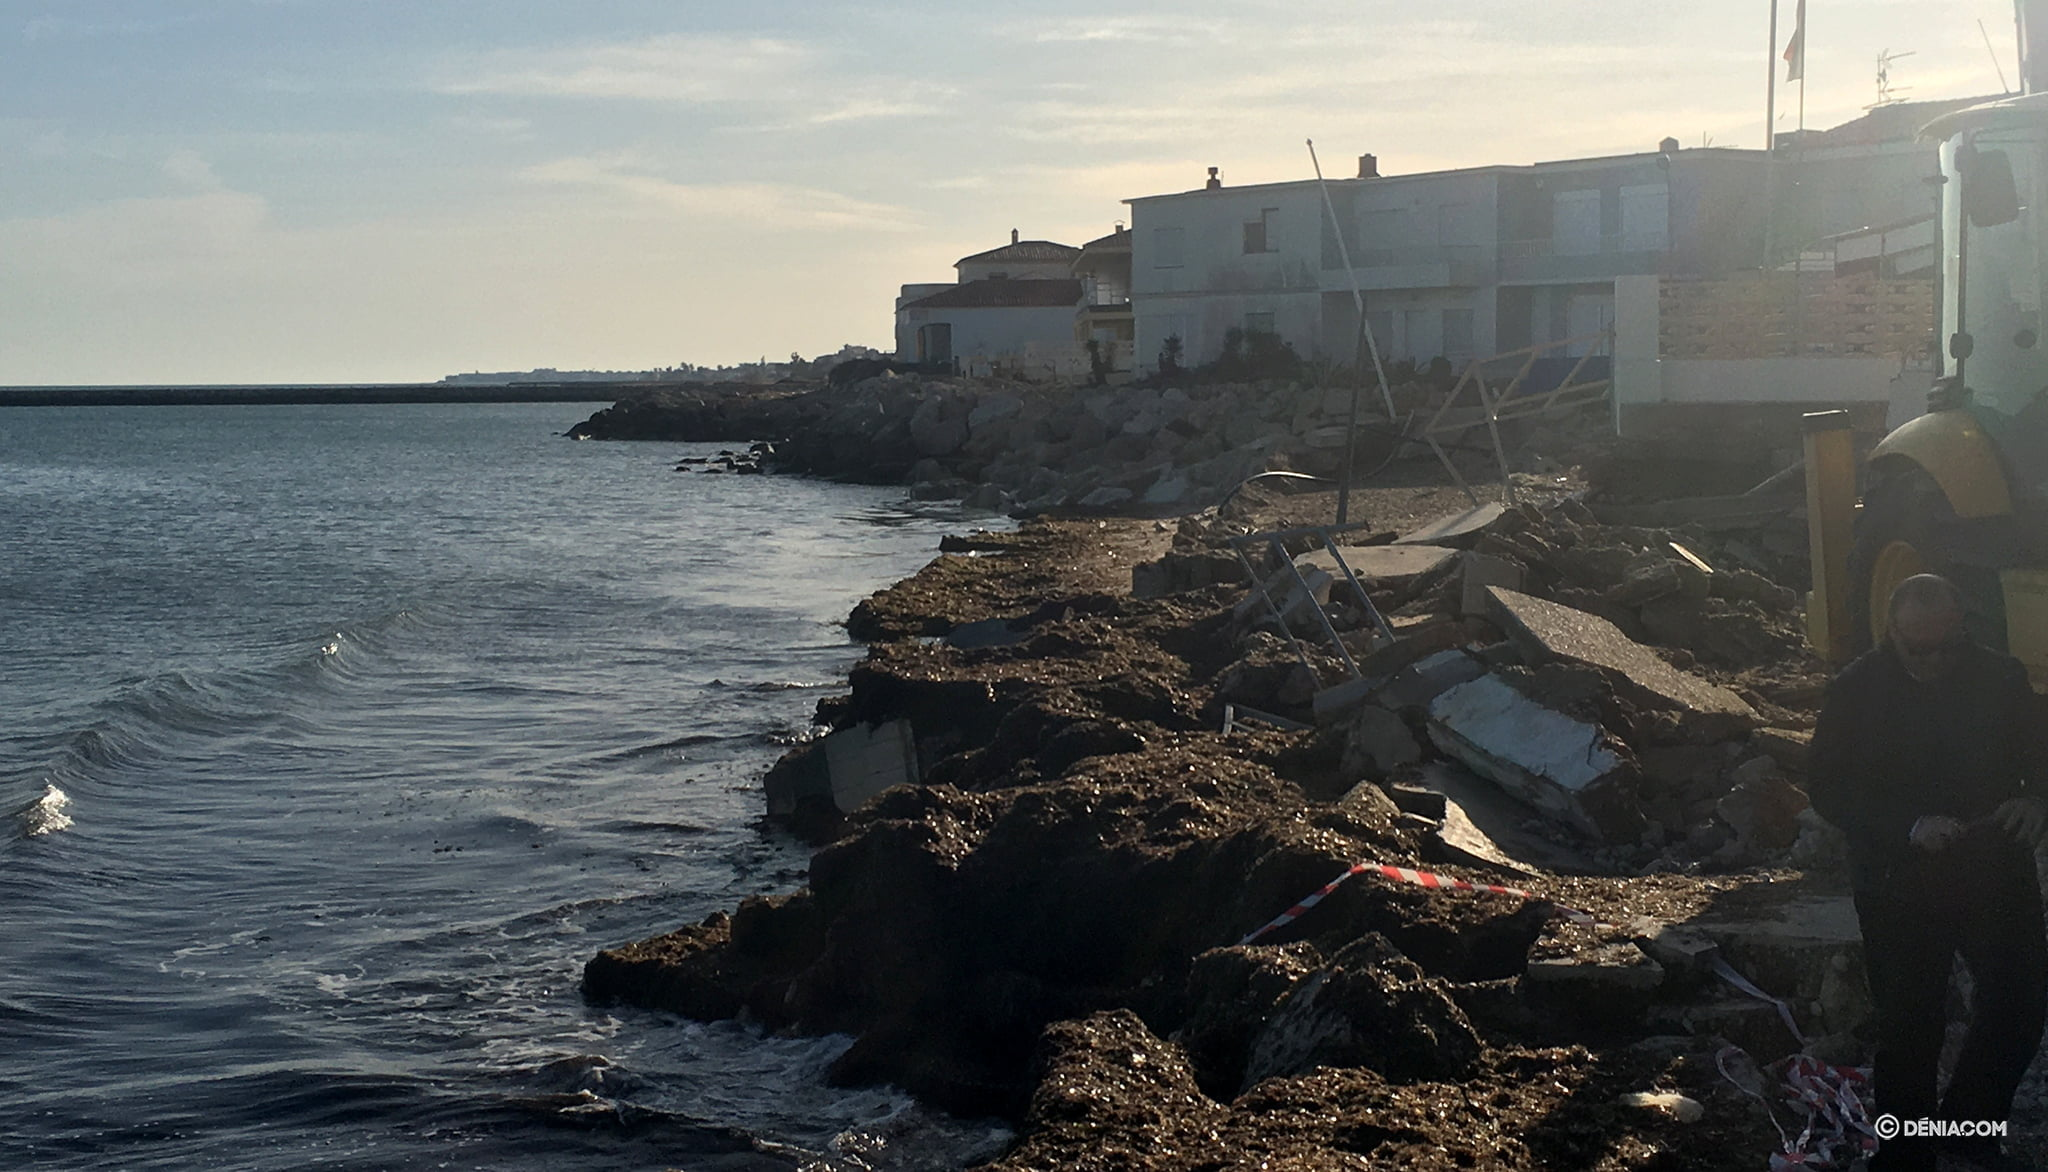 Les Deveses beach after the damage of Gloria